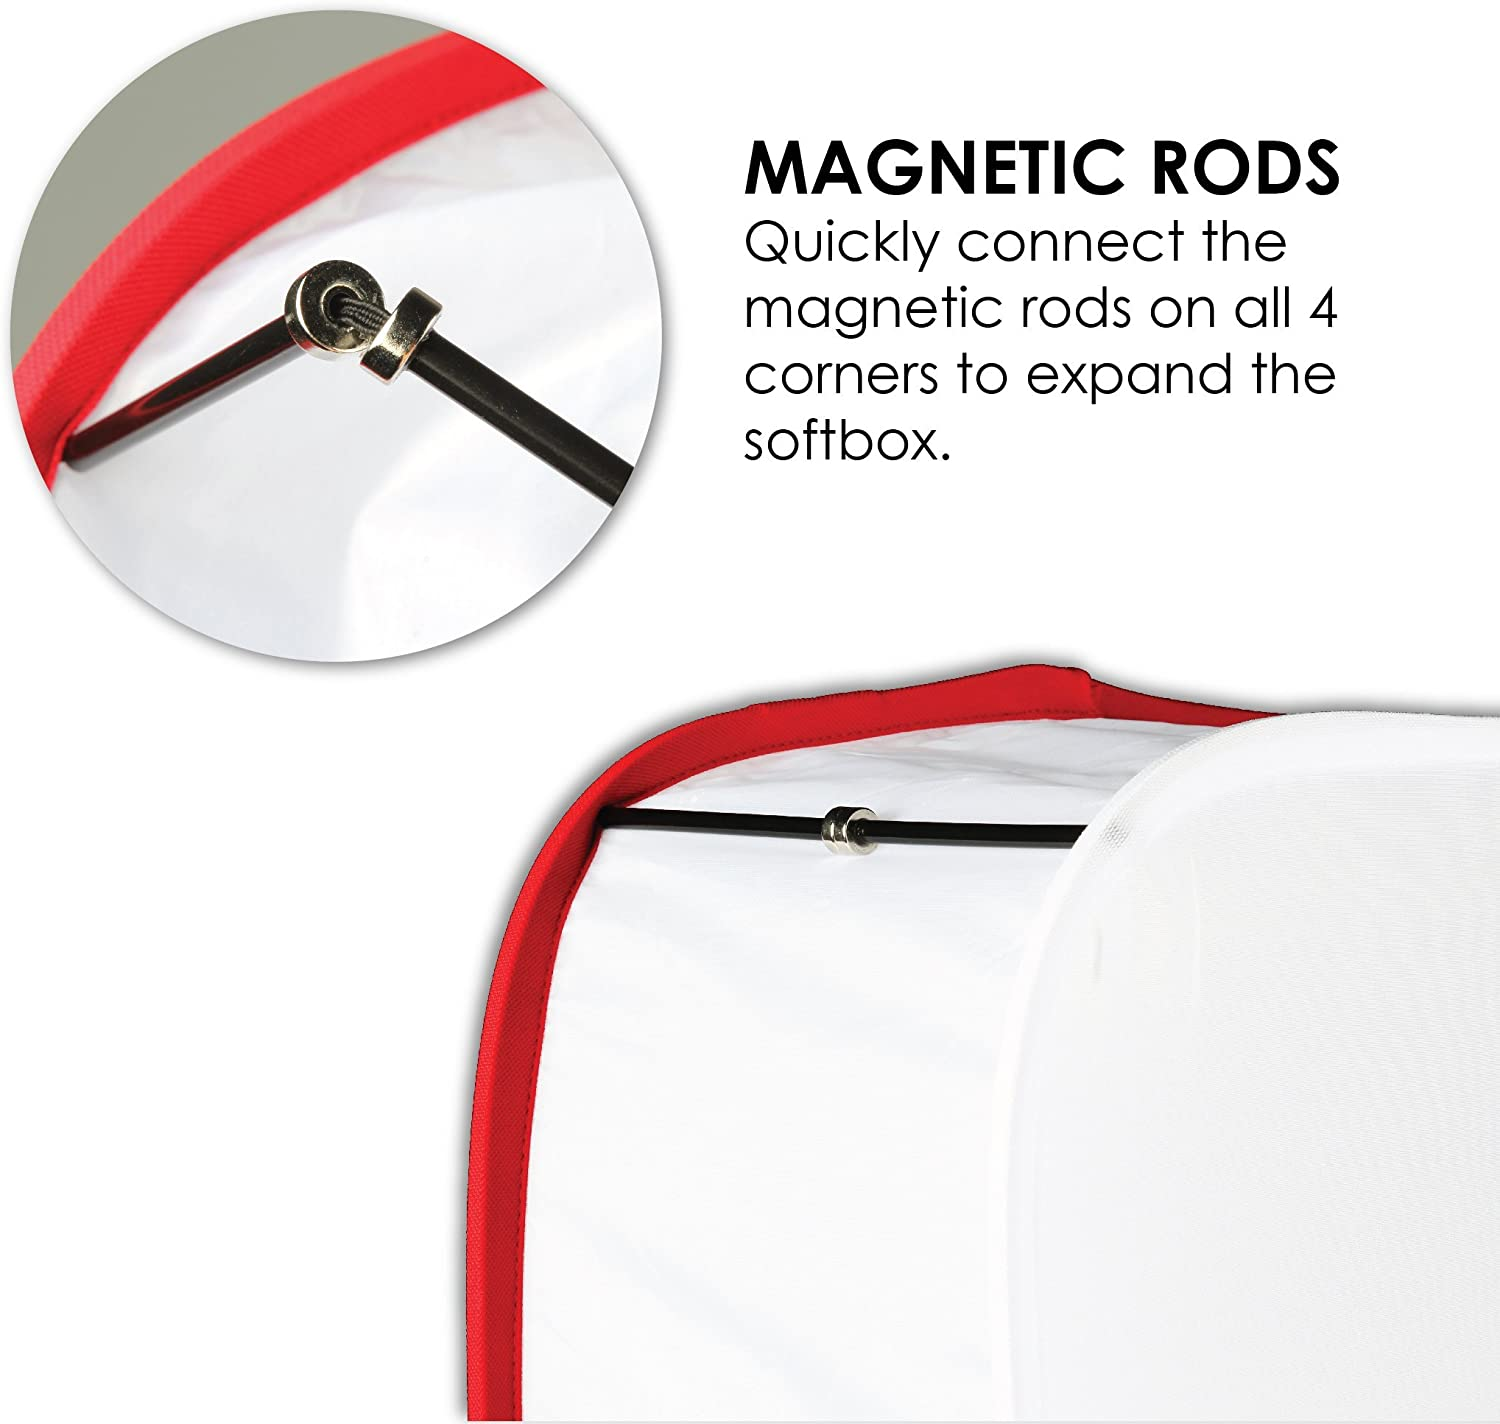 Foldable Photography Portable Diffuser DF-1MW Photo Video Carrying Bag Kamerar D-Fuse Medium White LED Light Panel Softbox: 9 x 9 Opening Strap Attachment